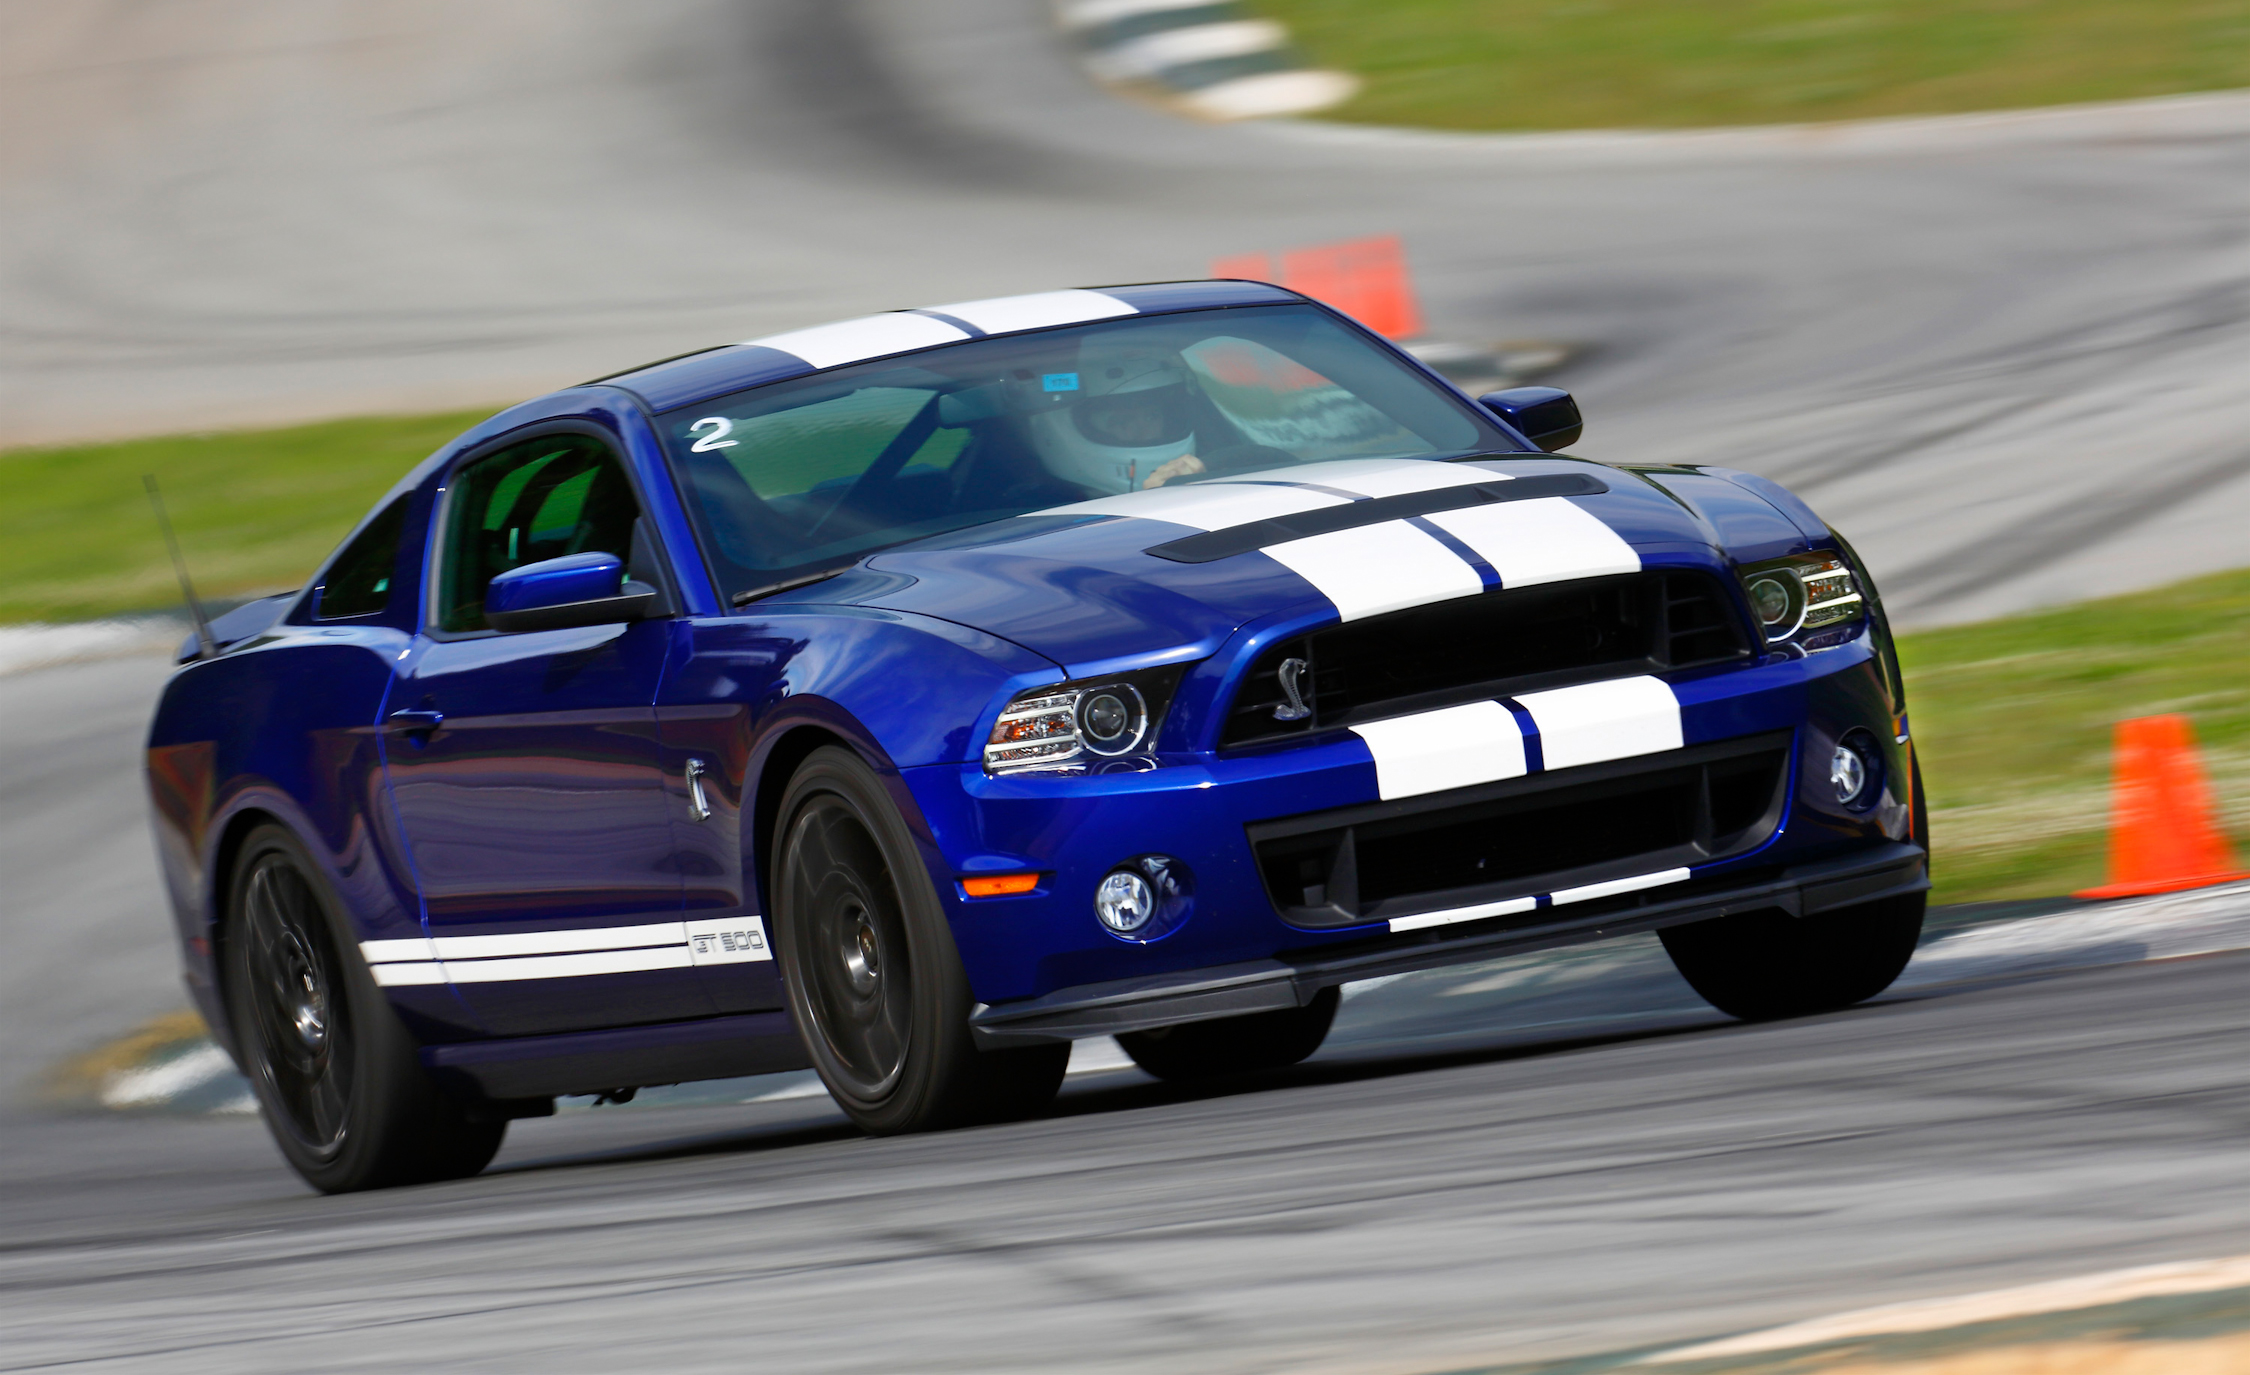 2013 Ford Shelby GT500 Blue (View 1 of 47)